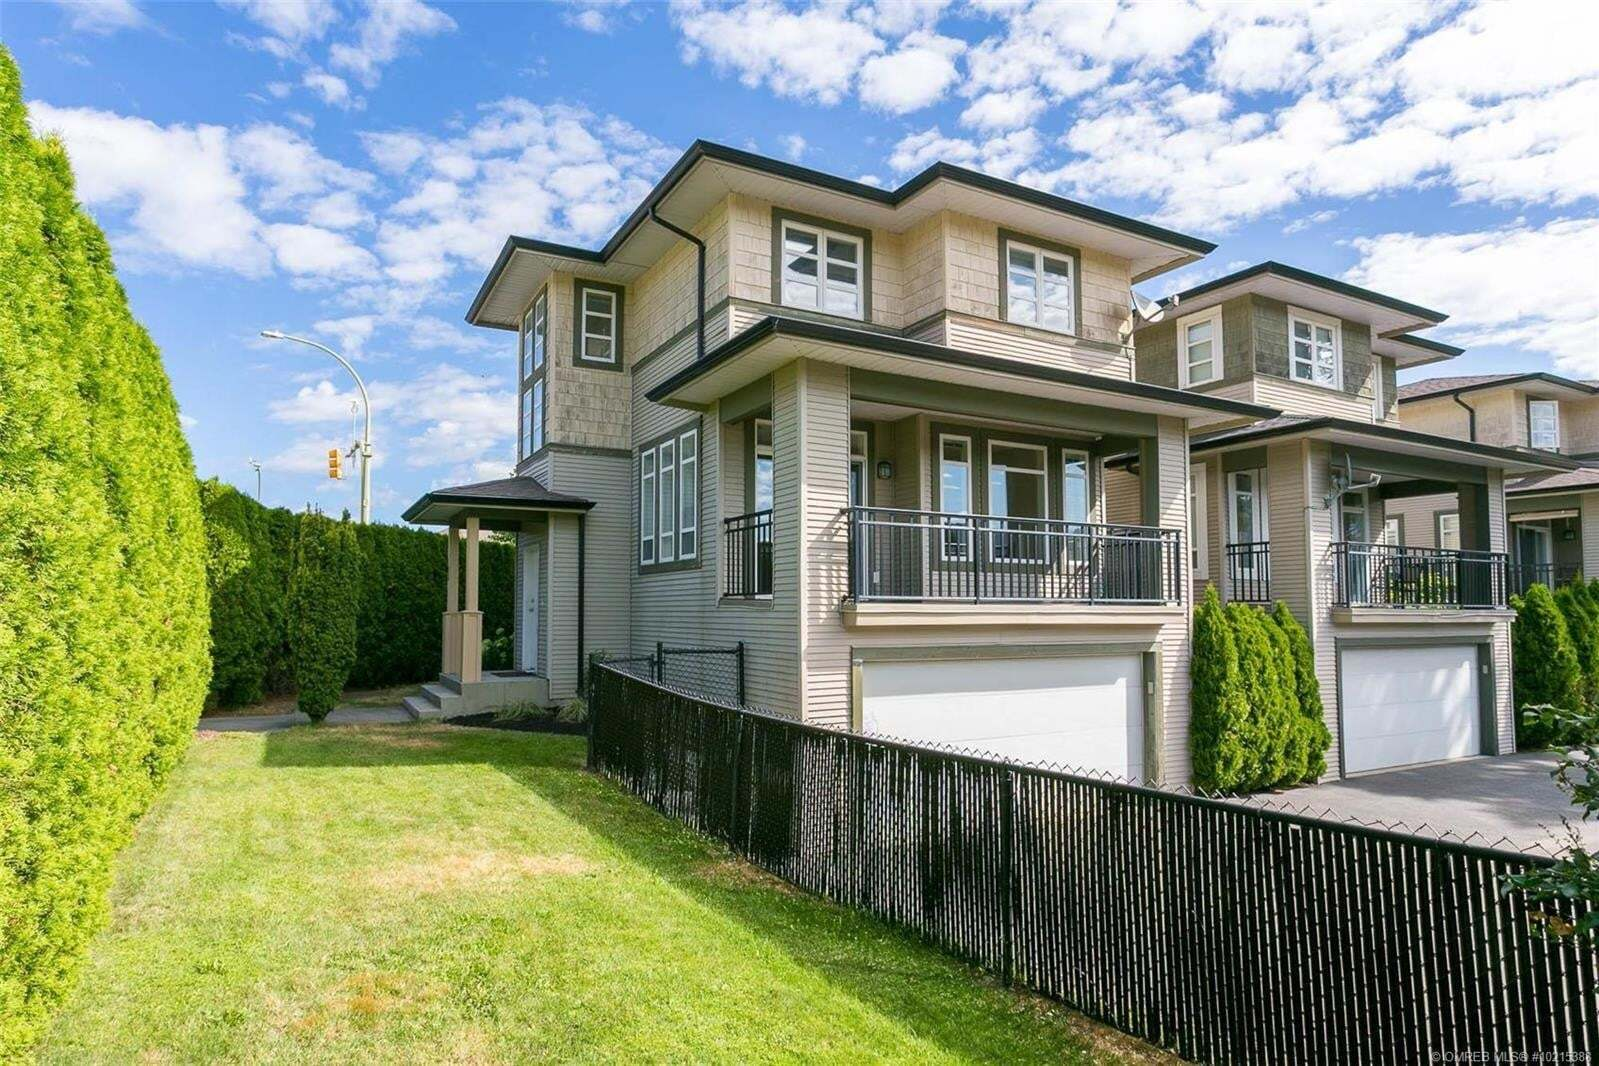 Townhouse for sale at 105 Mccurdy Rd East Kelowna British Columbia - MLS: 10215388